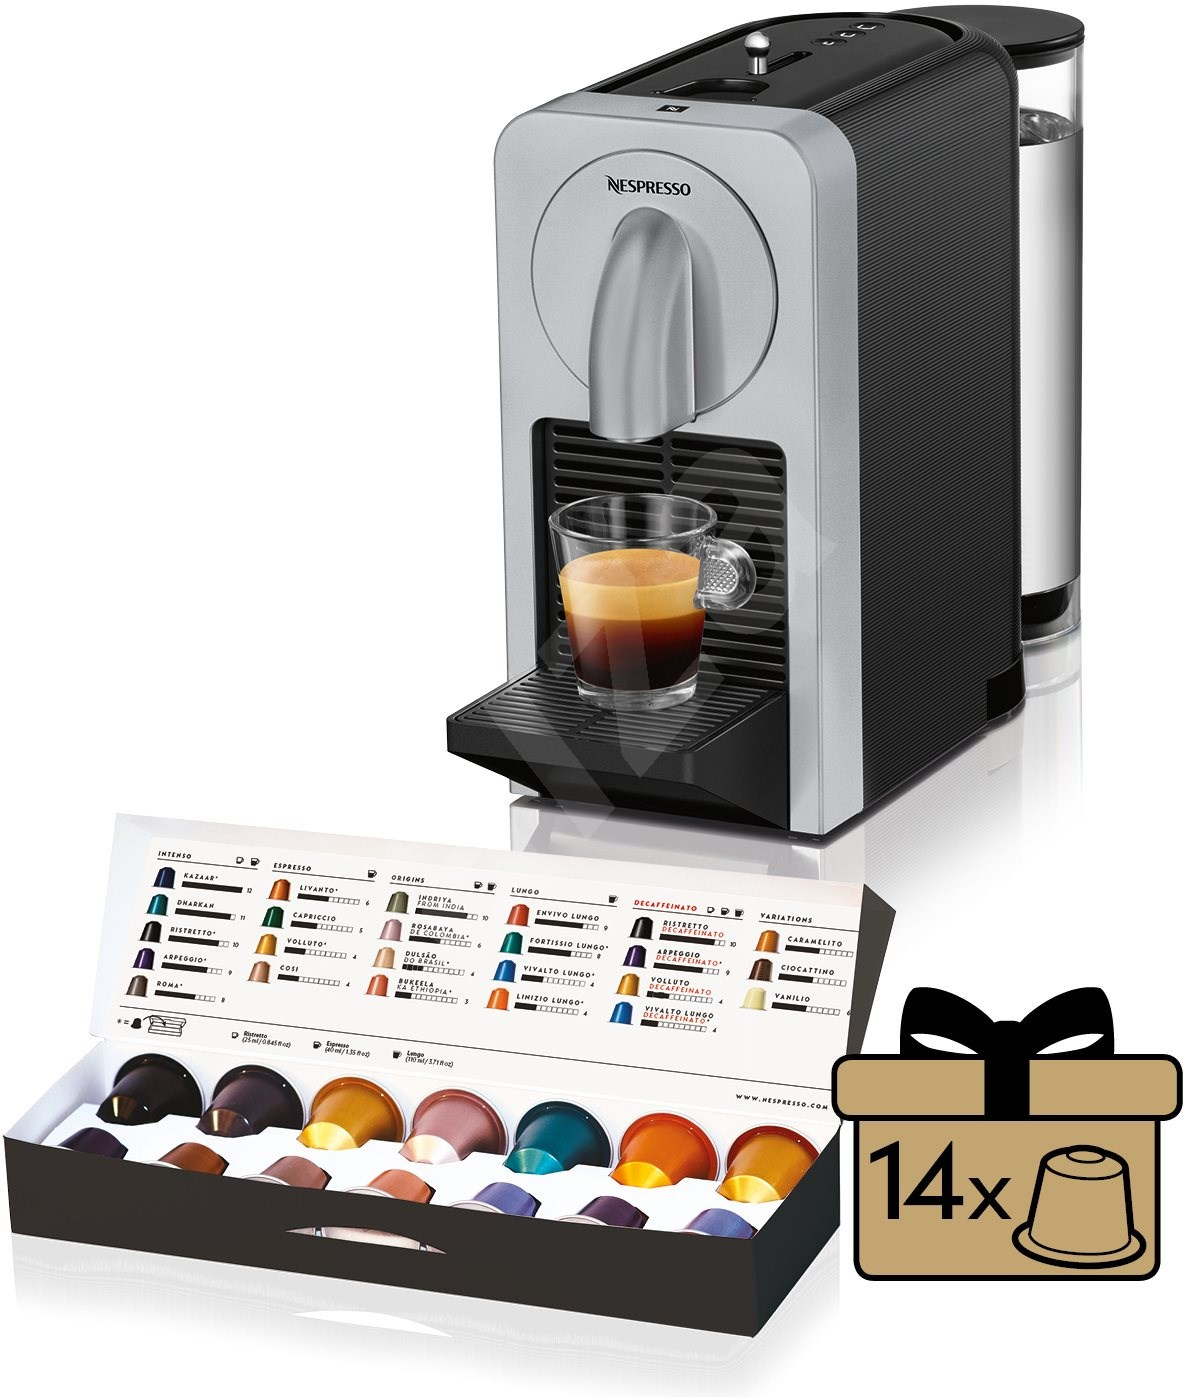 nespresso d longhi prodigio en170 s kapsel kaffeemaschine. Black Bedroom Furniture Sets. Home Design Ideas